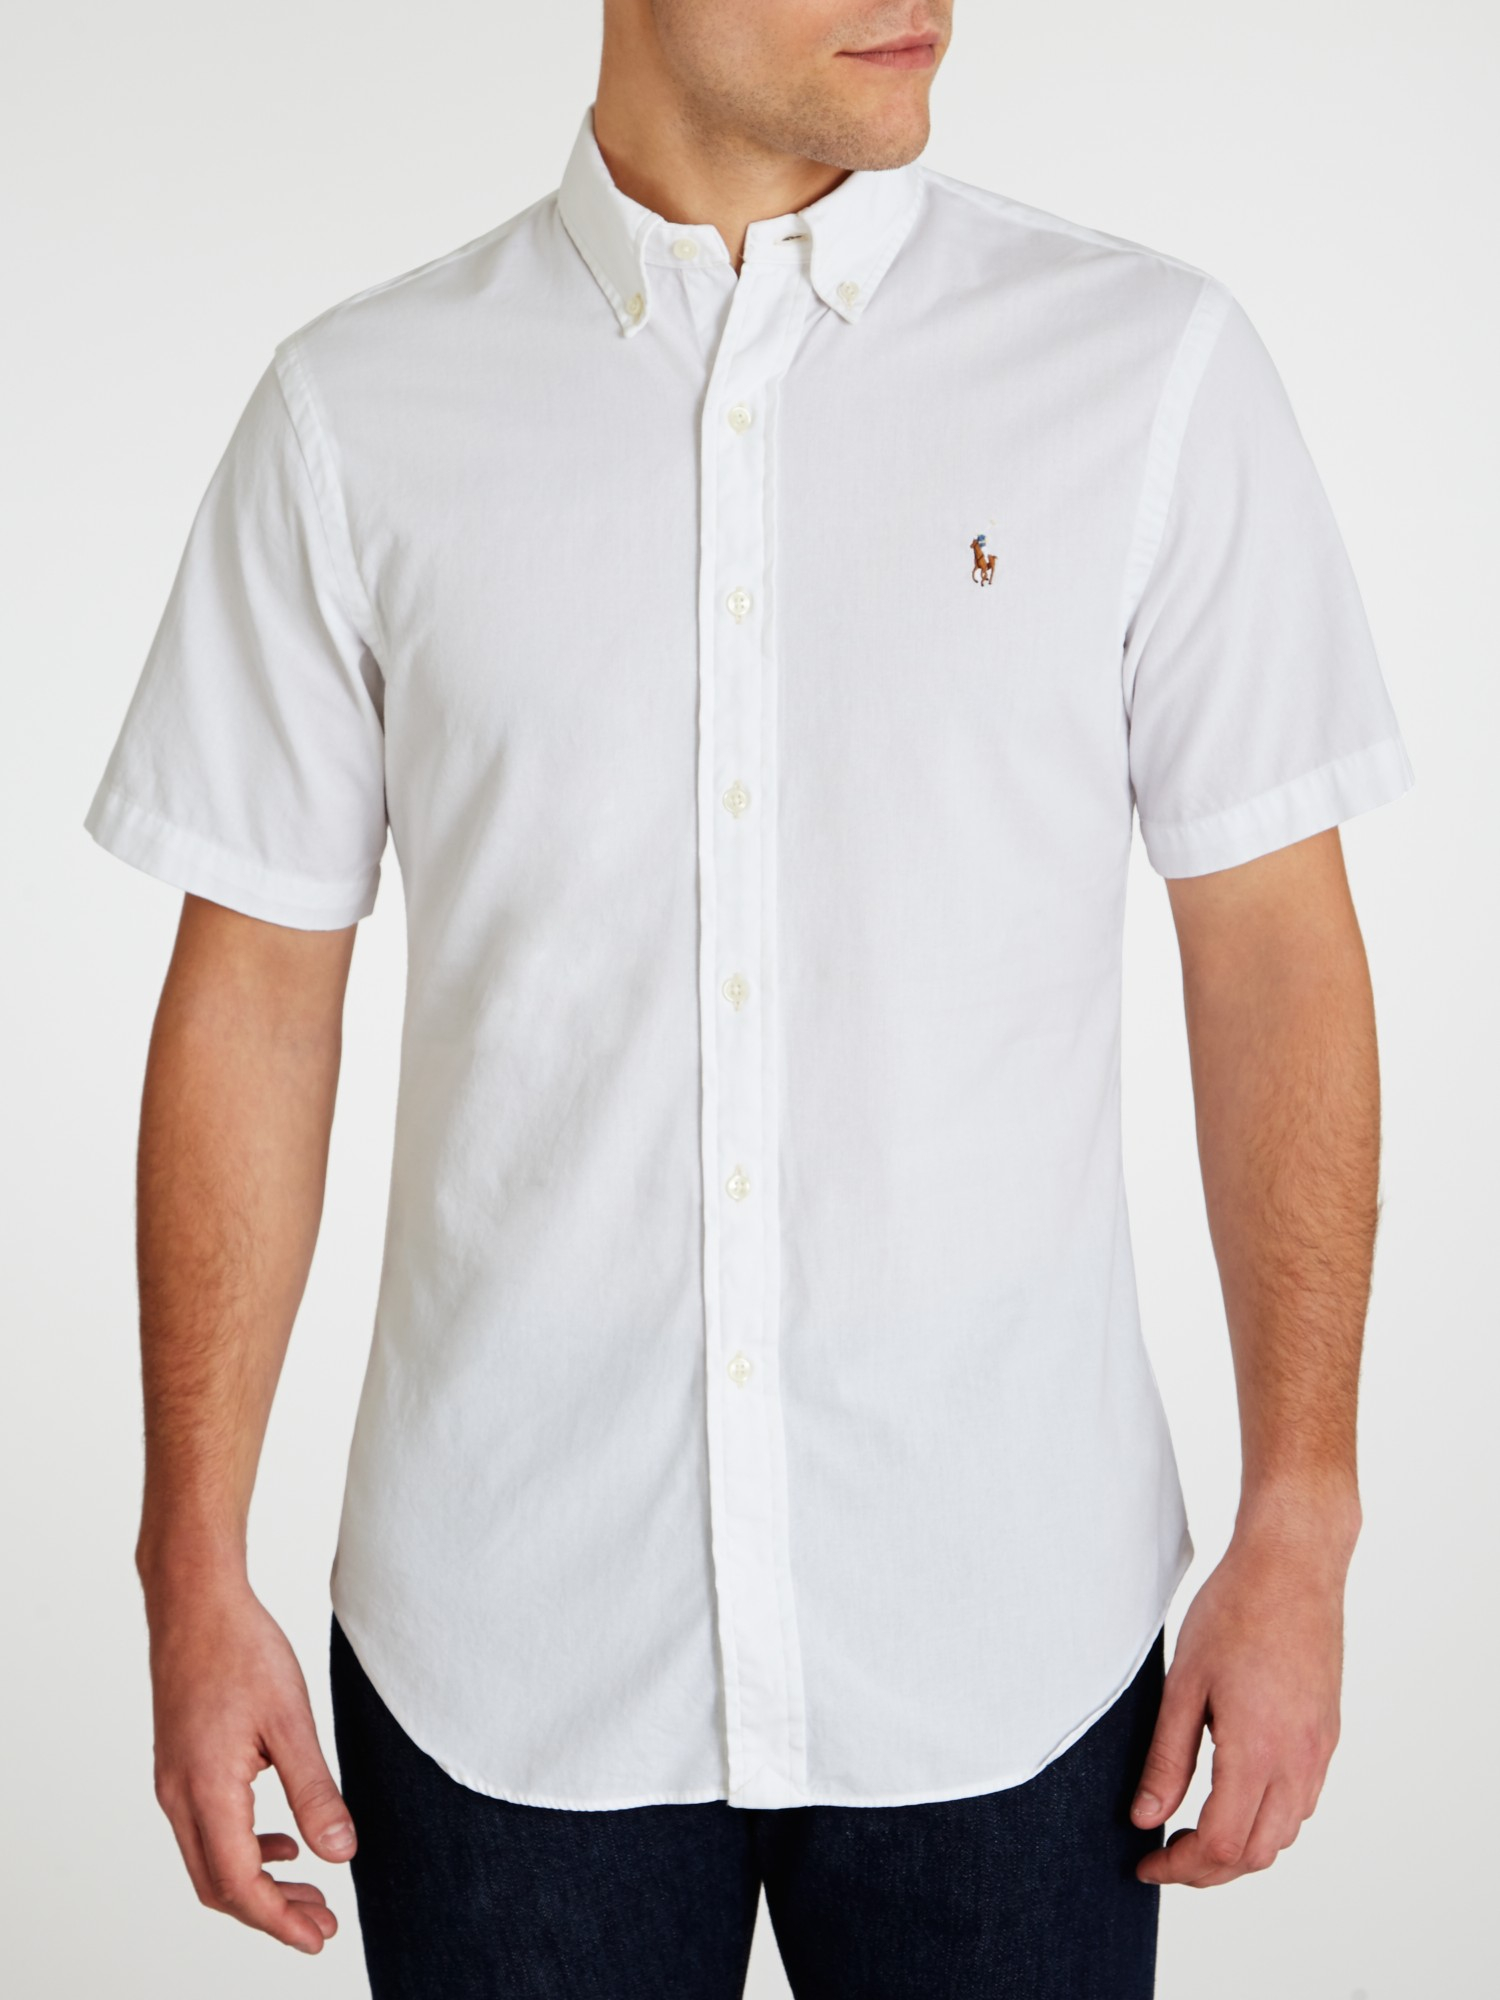 Polo Ralph Lauren Chambray Short Sleeve Shirt In White For